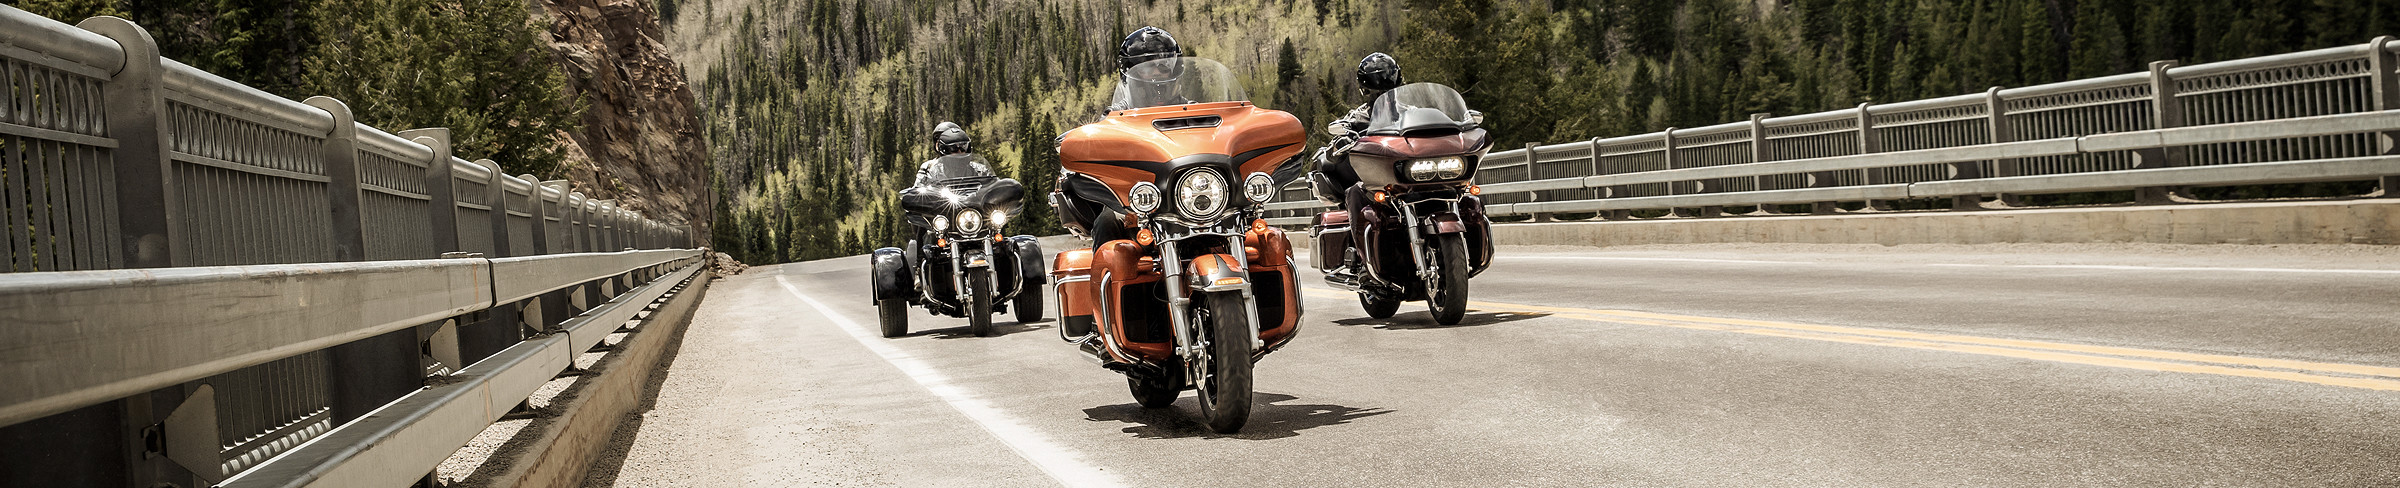 New 2020 Harley Davidson Street Glide for sale near Mankato, MN